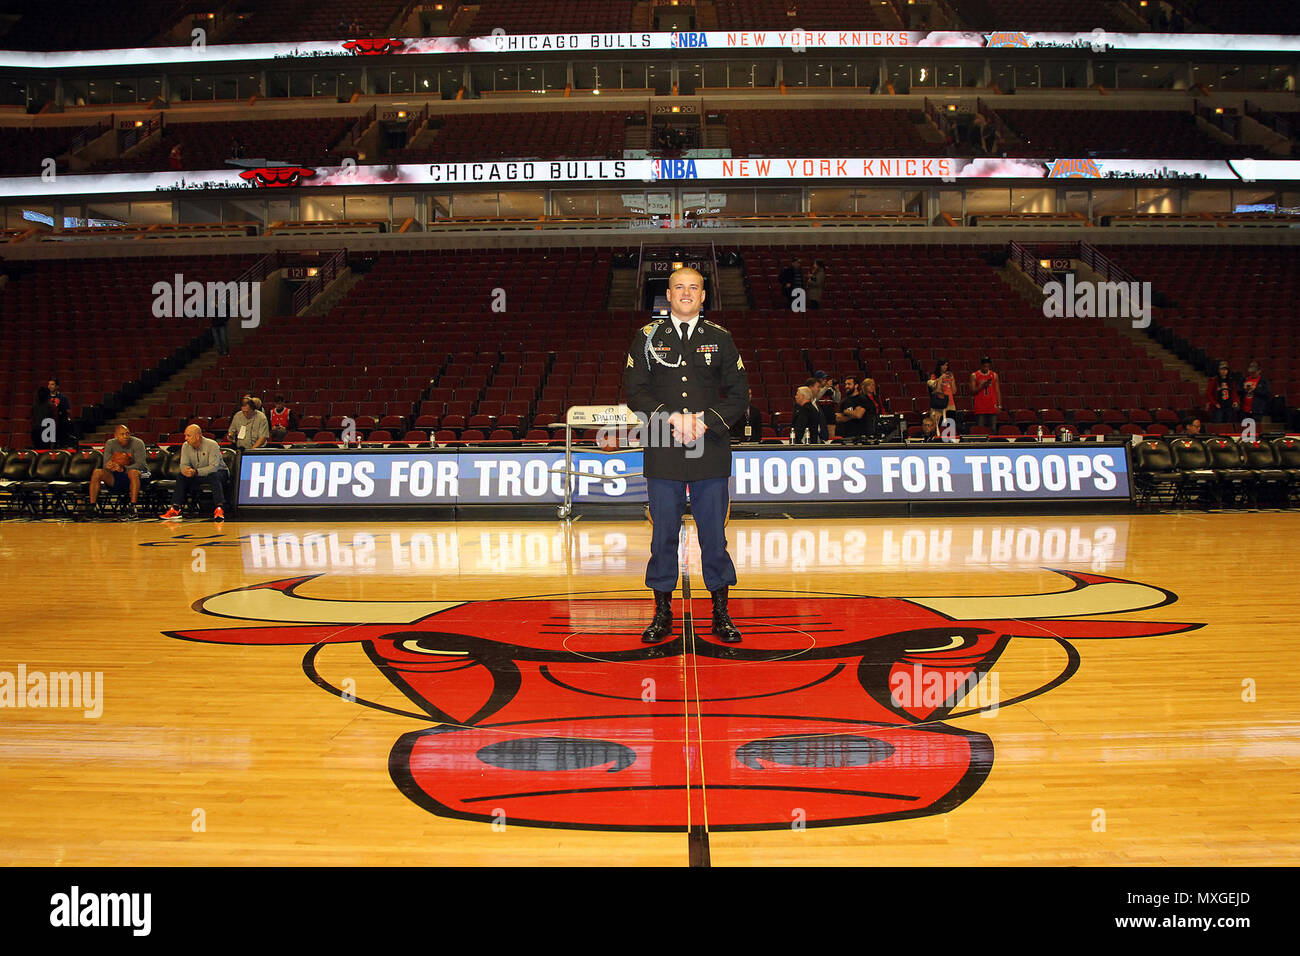 The 2015 U.S. Army Soldier of the Year Sgt. Jared Tansley, Illinois native, pauses for a photo before the Chicago Bulls vs. New York Knicks game at the United Center, Nov. 4, 2016. Tansley attended the game as part of a hometown recognition here in Illinois. During his visit, Tansley spoke at numerous locations throughout Chicago and Illinois to include his former high school in Sycamore, Illinois.   (U.S. Army photo by Anthony L. Taylor/Released) Stock Photo